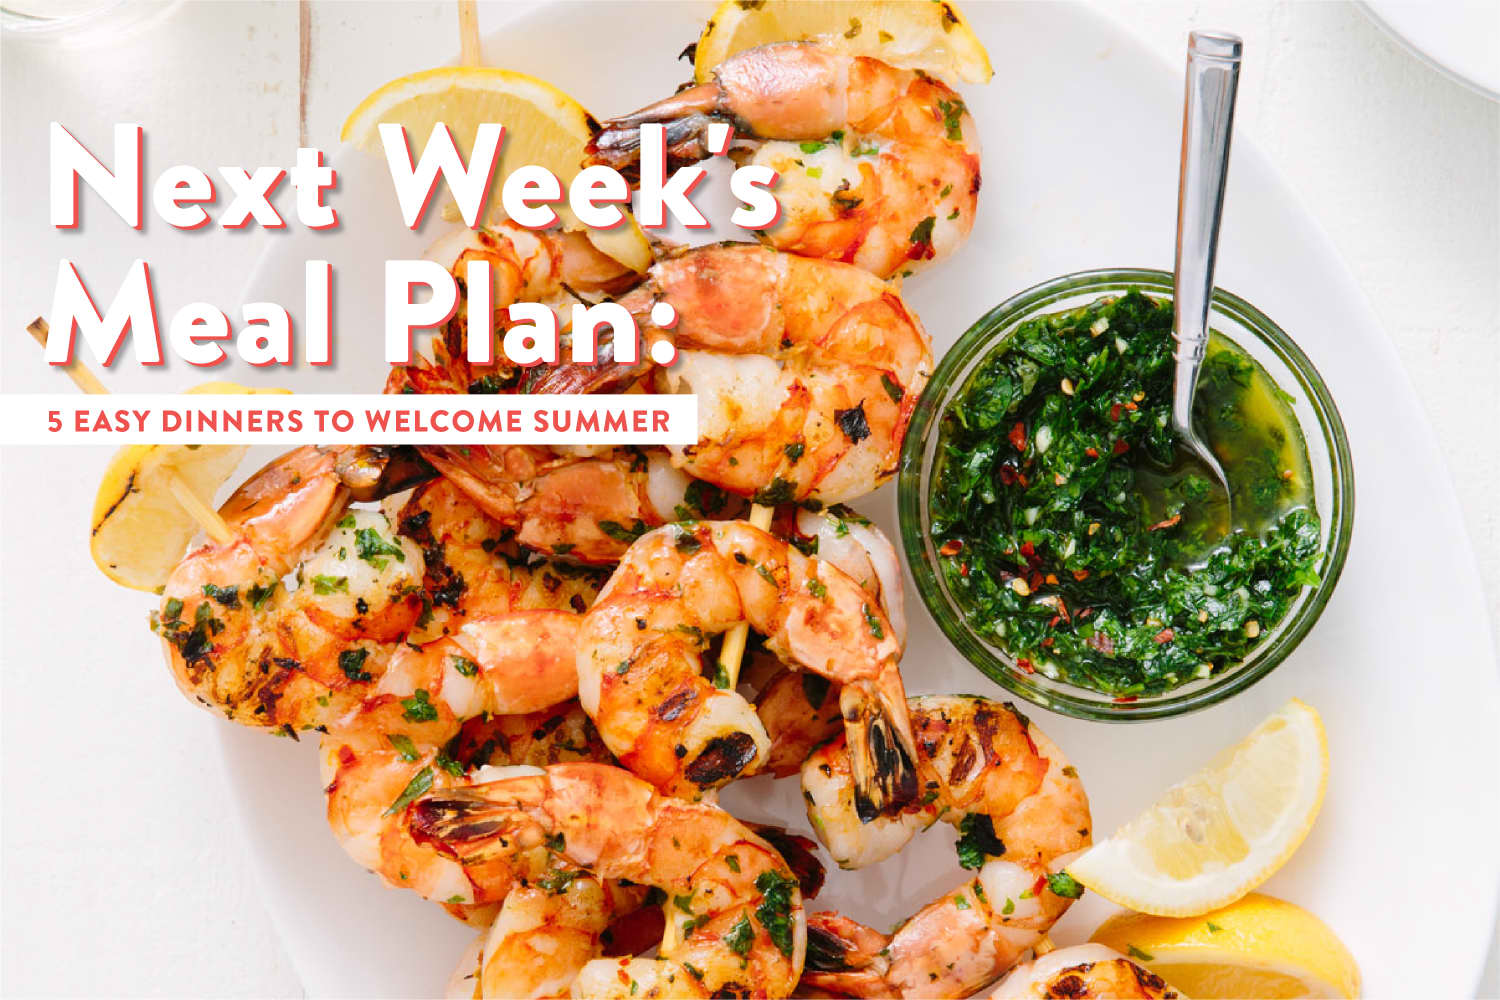 Next Week's Meal Plan: 5 Easy Dinners to Welcome Summer